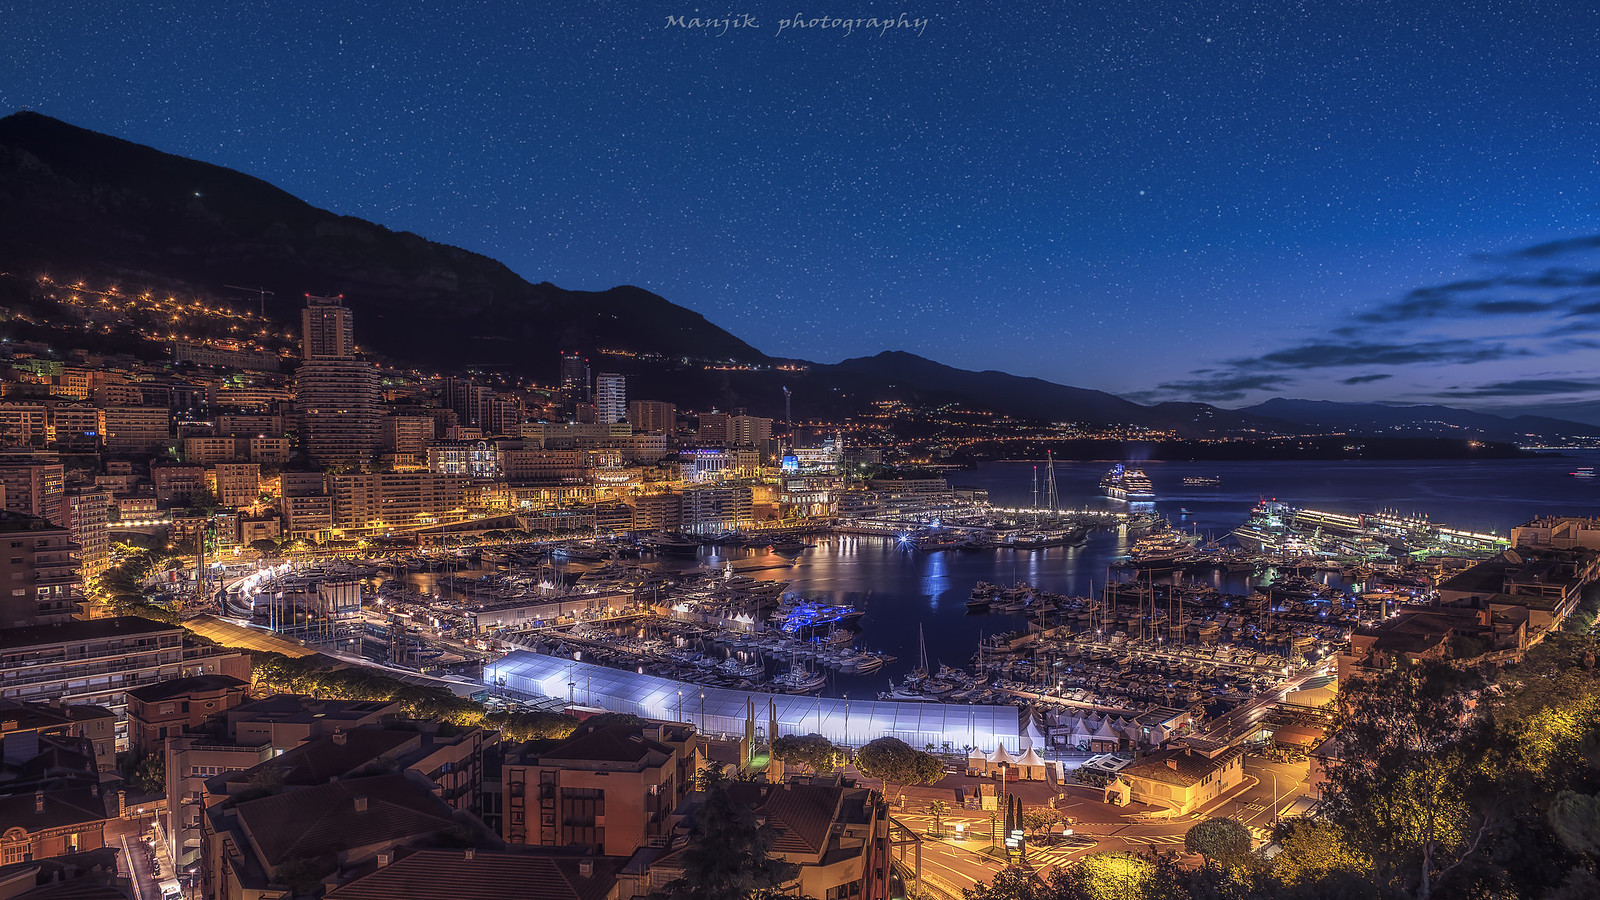 From Monaco with love